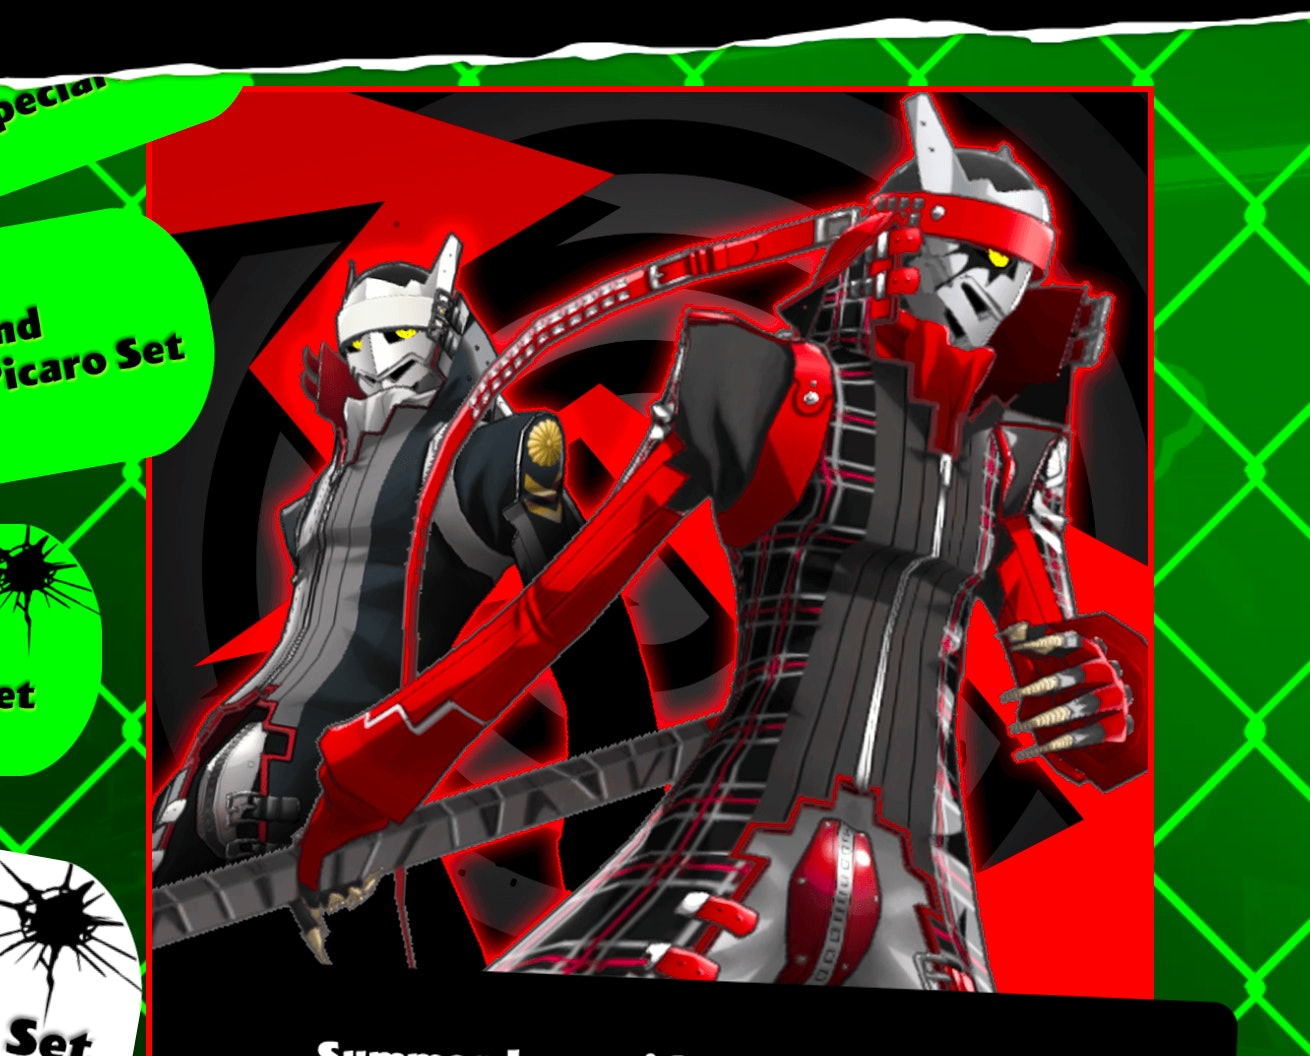 Persona 5' DLC Schedule Update: Price for new personas